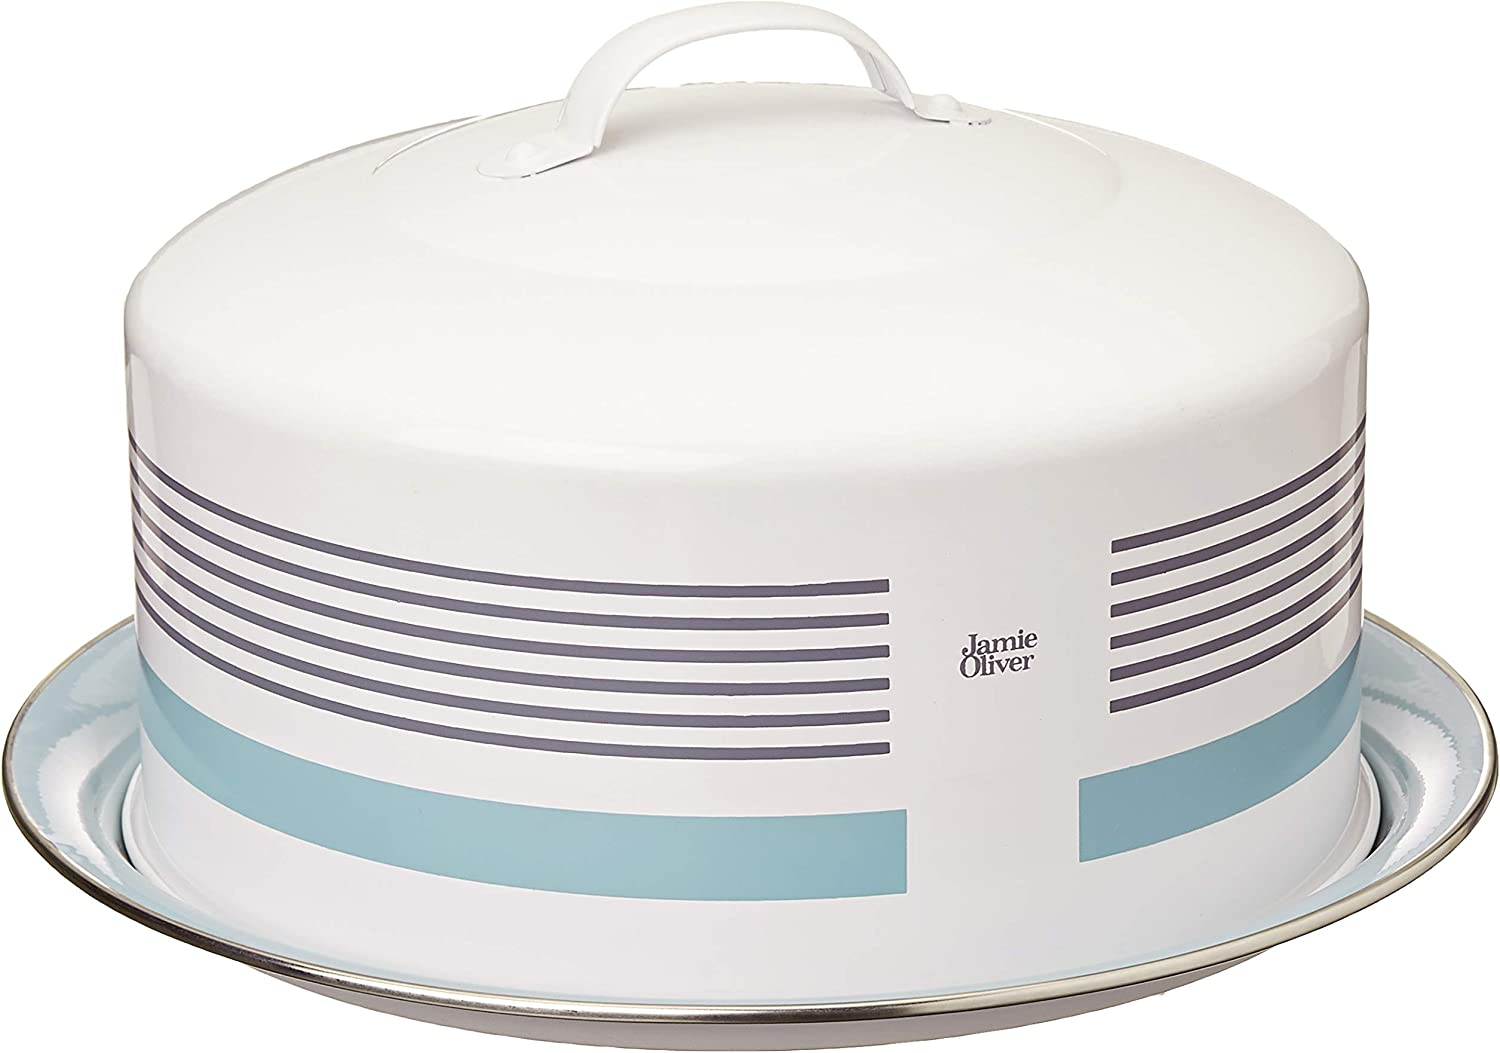 Jamie Oliver Baking Cake Tin with Cover Lid and Handle, Round, Stainless Steel